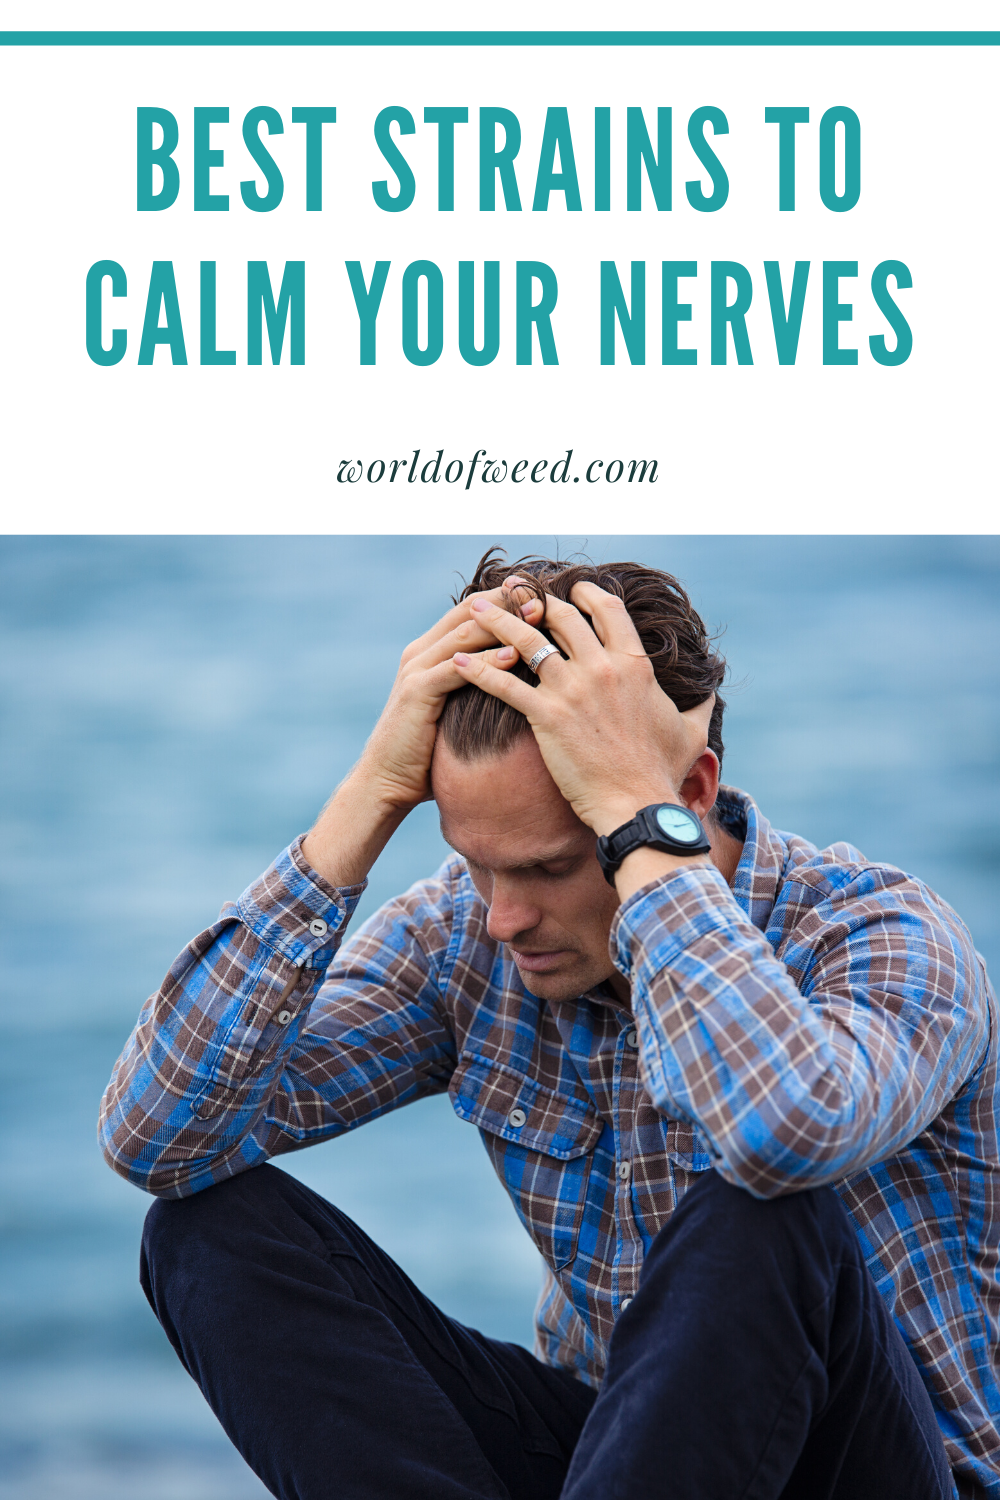 5 Best Strains to Calm Your Nerves